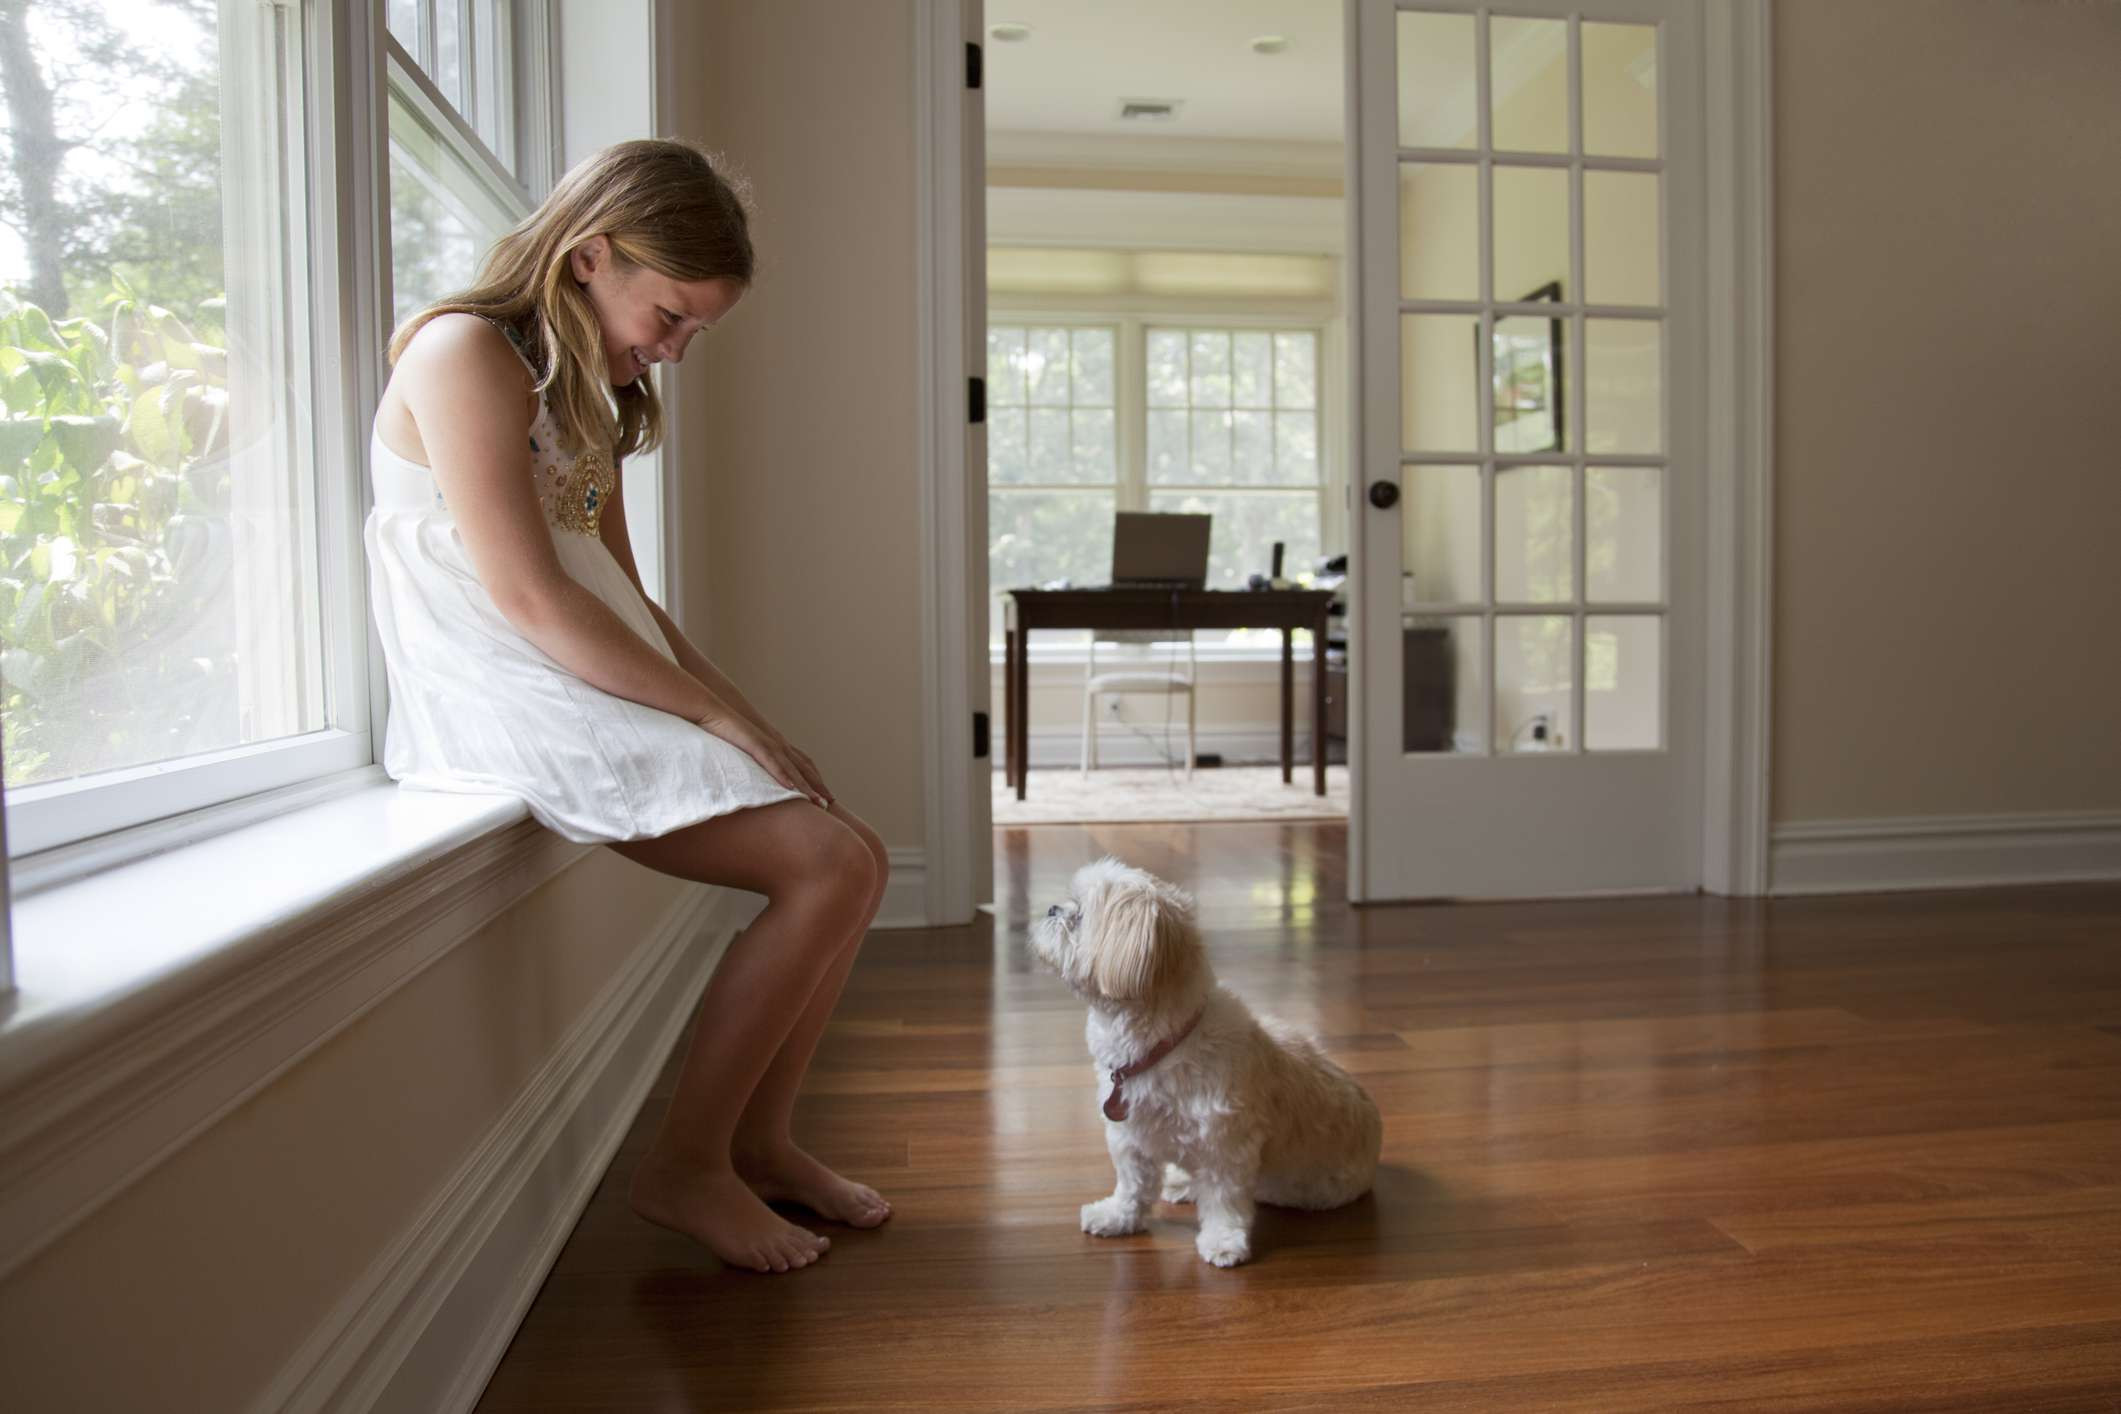 hardwood flooring sales jobs of are there any age appropriate jobs for 9 year olds in gettyimages 482886419 5765a9de5f9b58346ad54d28